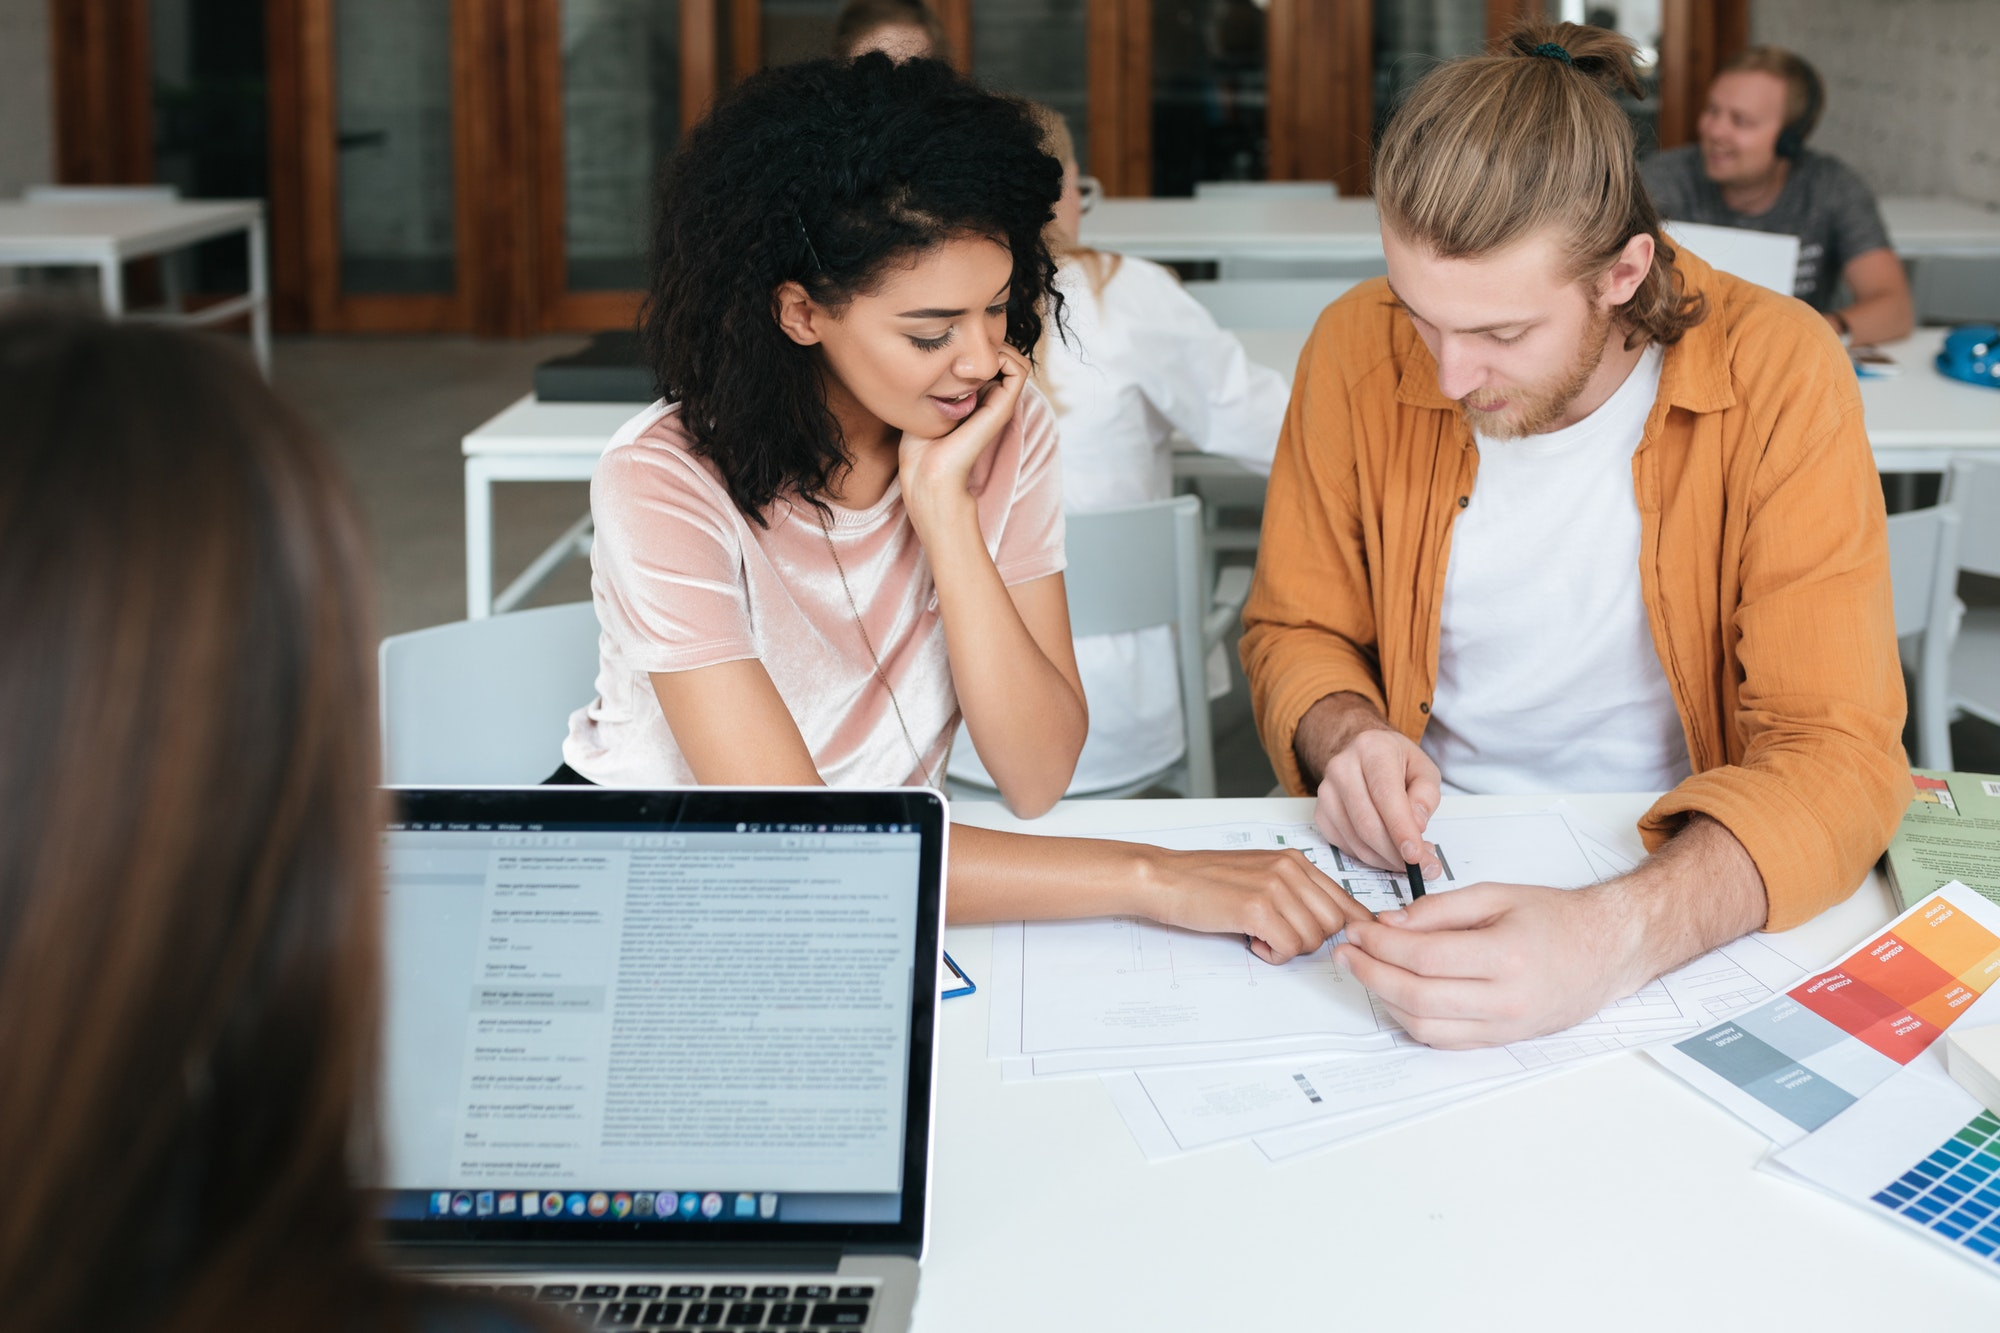 Young man and girl working and making notes together in office